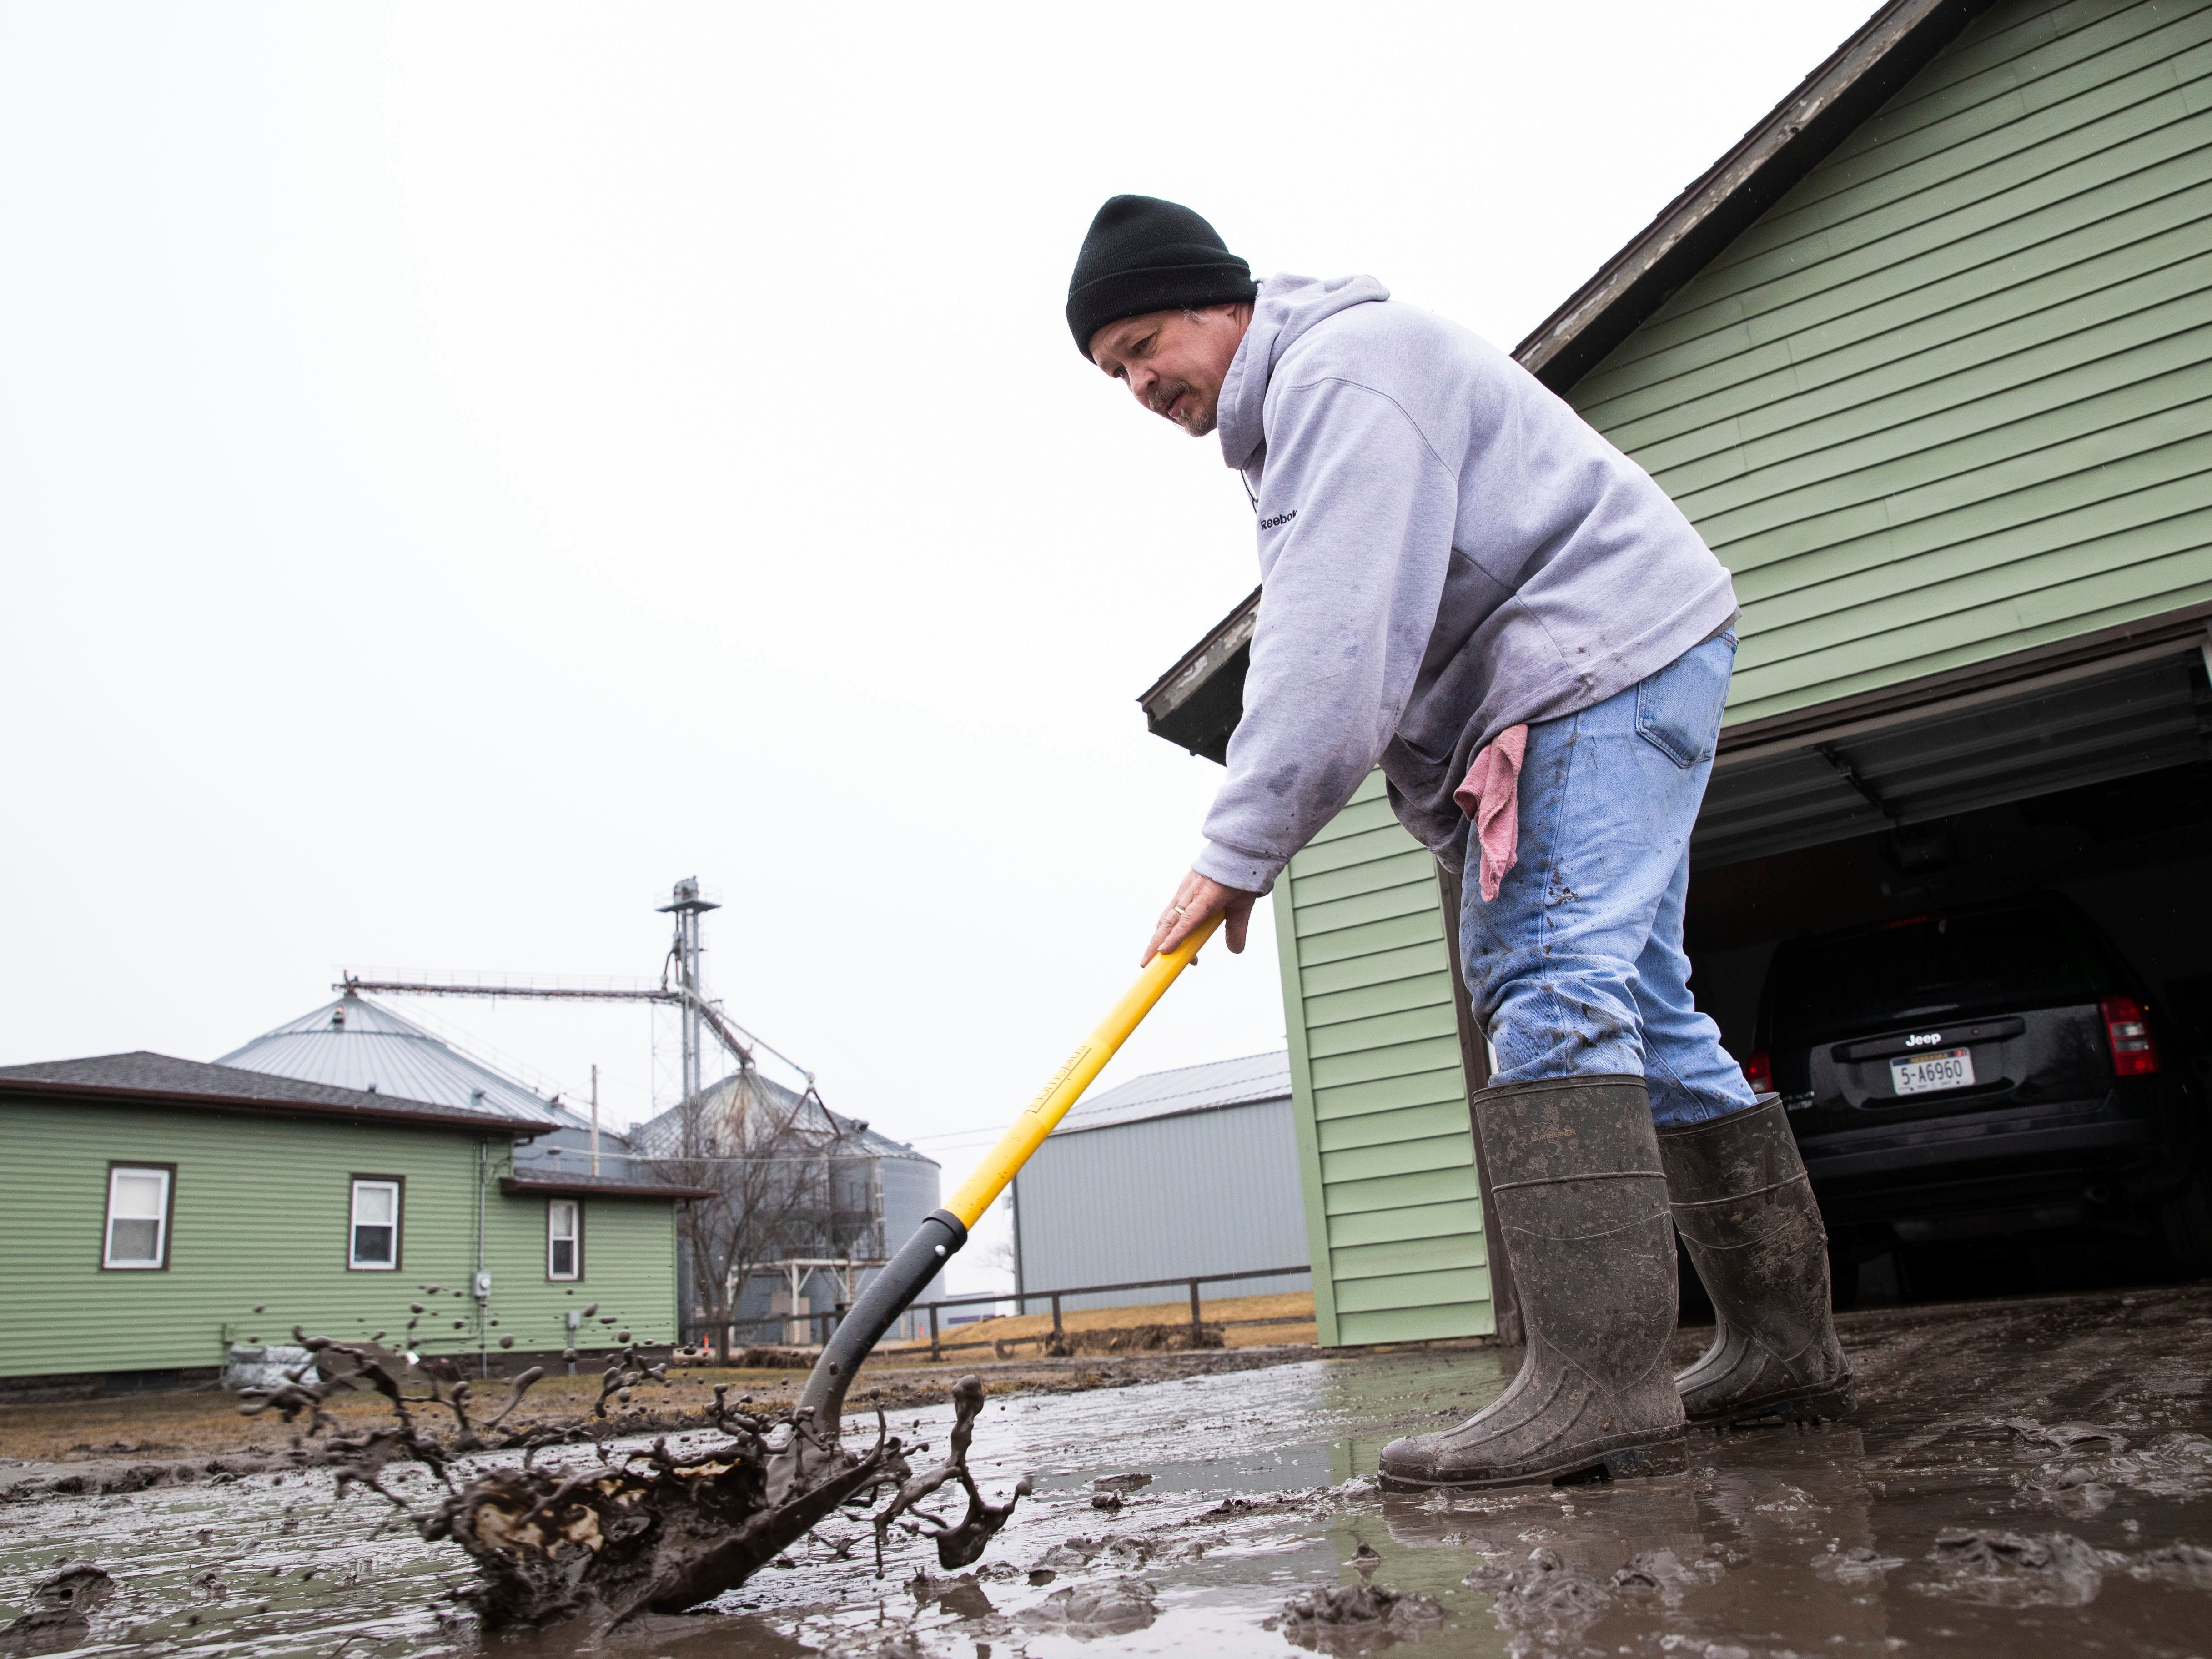 Mike Loeffler clears mud from his driveway while dealing with the aftermath of major flooding on March 19, 2019, in North Bend, Neb.  The president of the Nebraska Farm Bureau says farm and ranch losses due to the devastating flooding could reach $1 billion in the state.